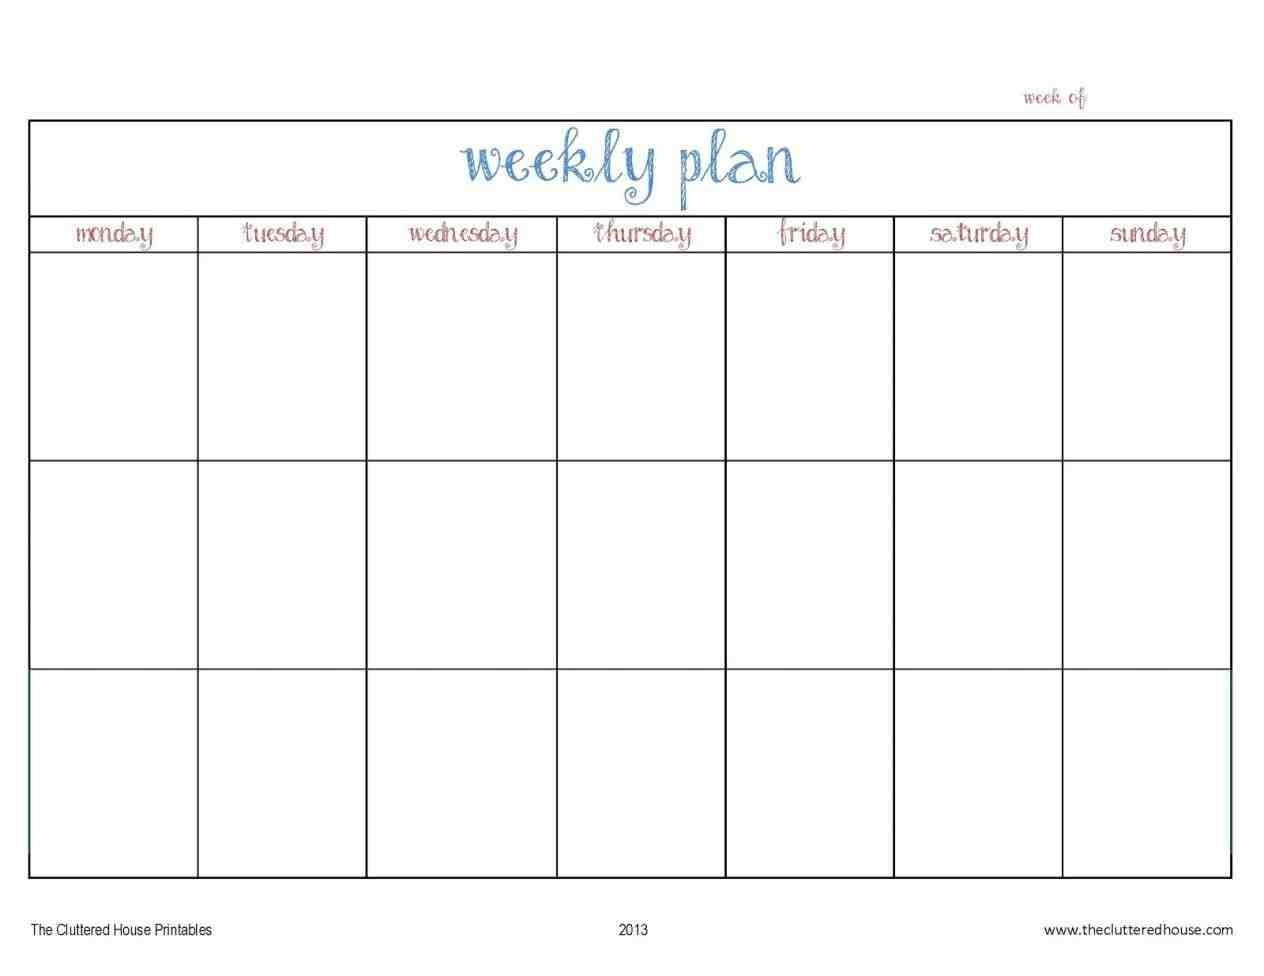 Day Weekly Calendar Template Schedule Microsoft Word | Smorad within Weekly Calendar Template 5 Days